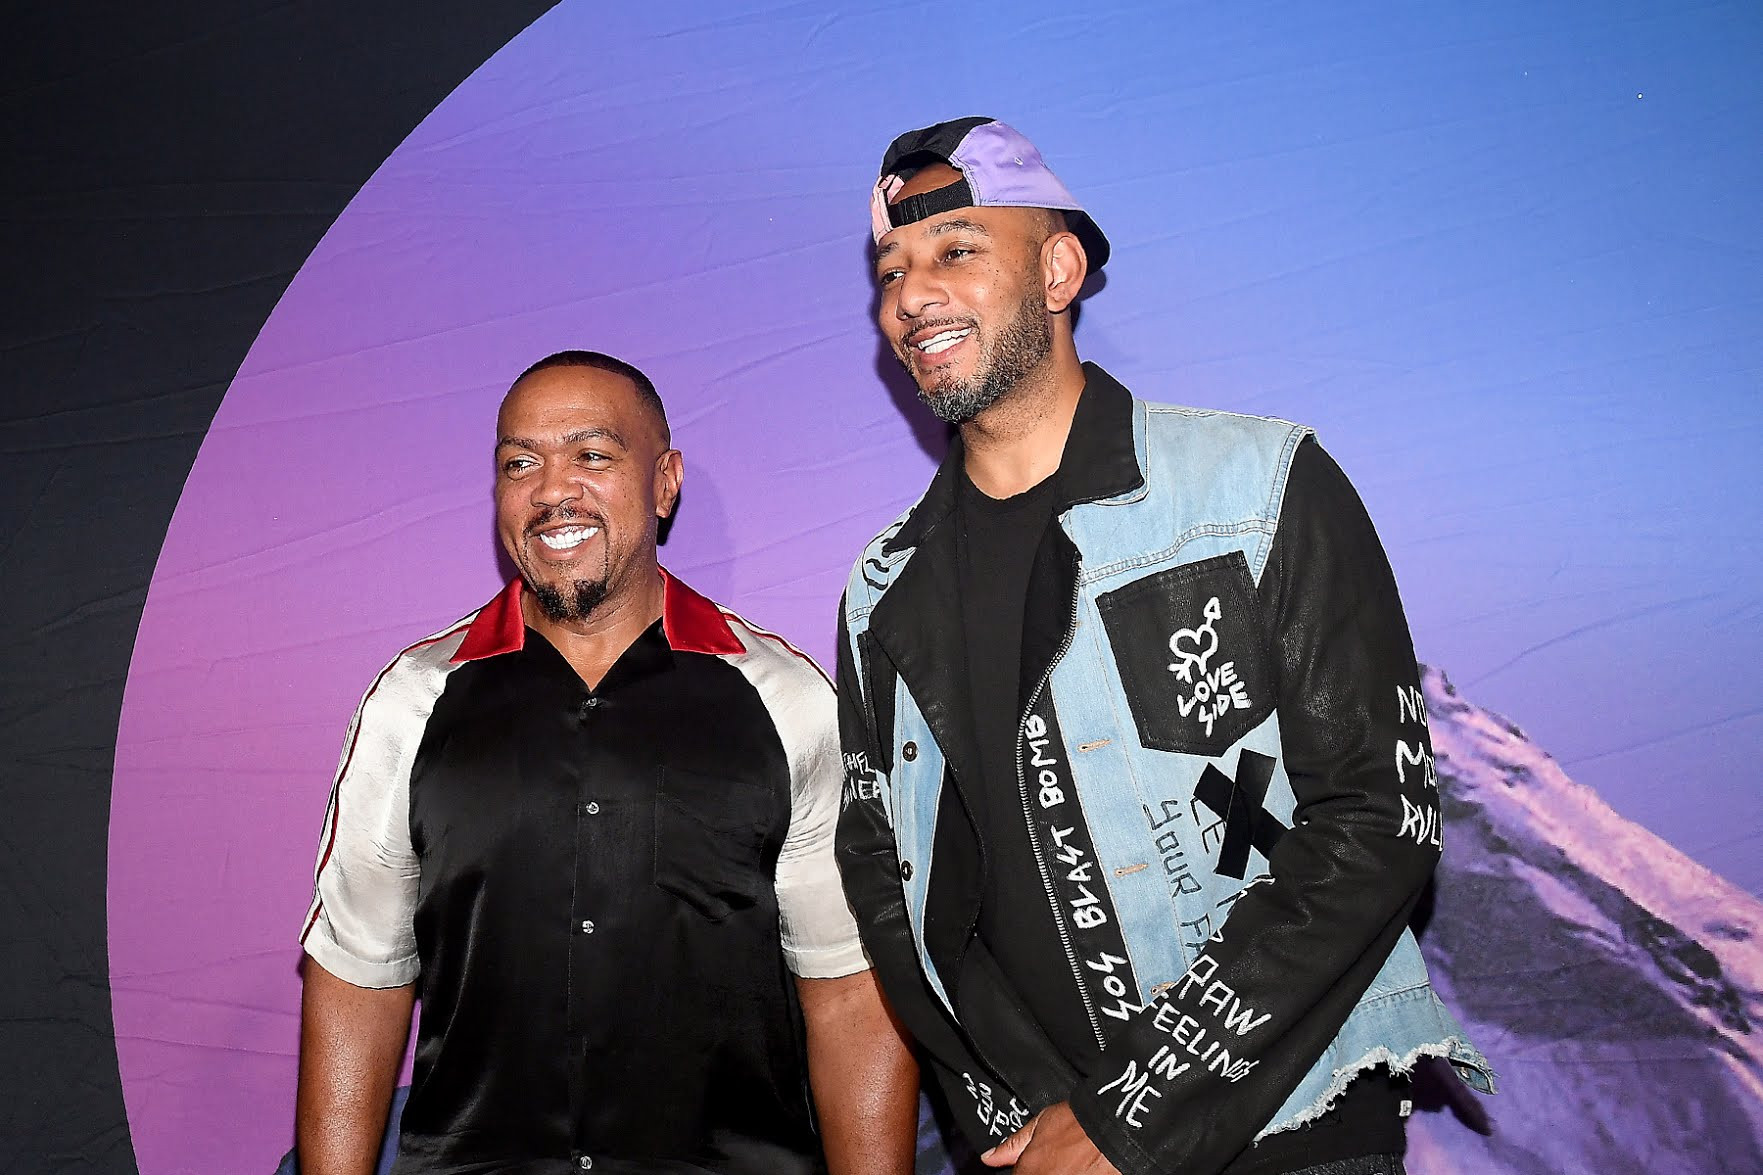 Timbaland and Swizz Beatz sell their Verzuz video streaming app to Thriller for undisclosed amount